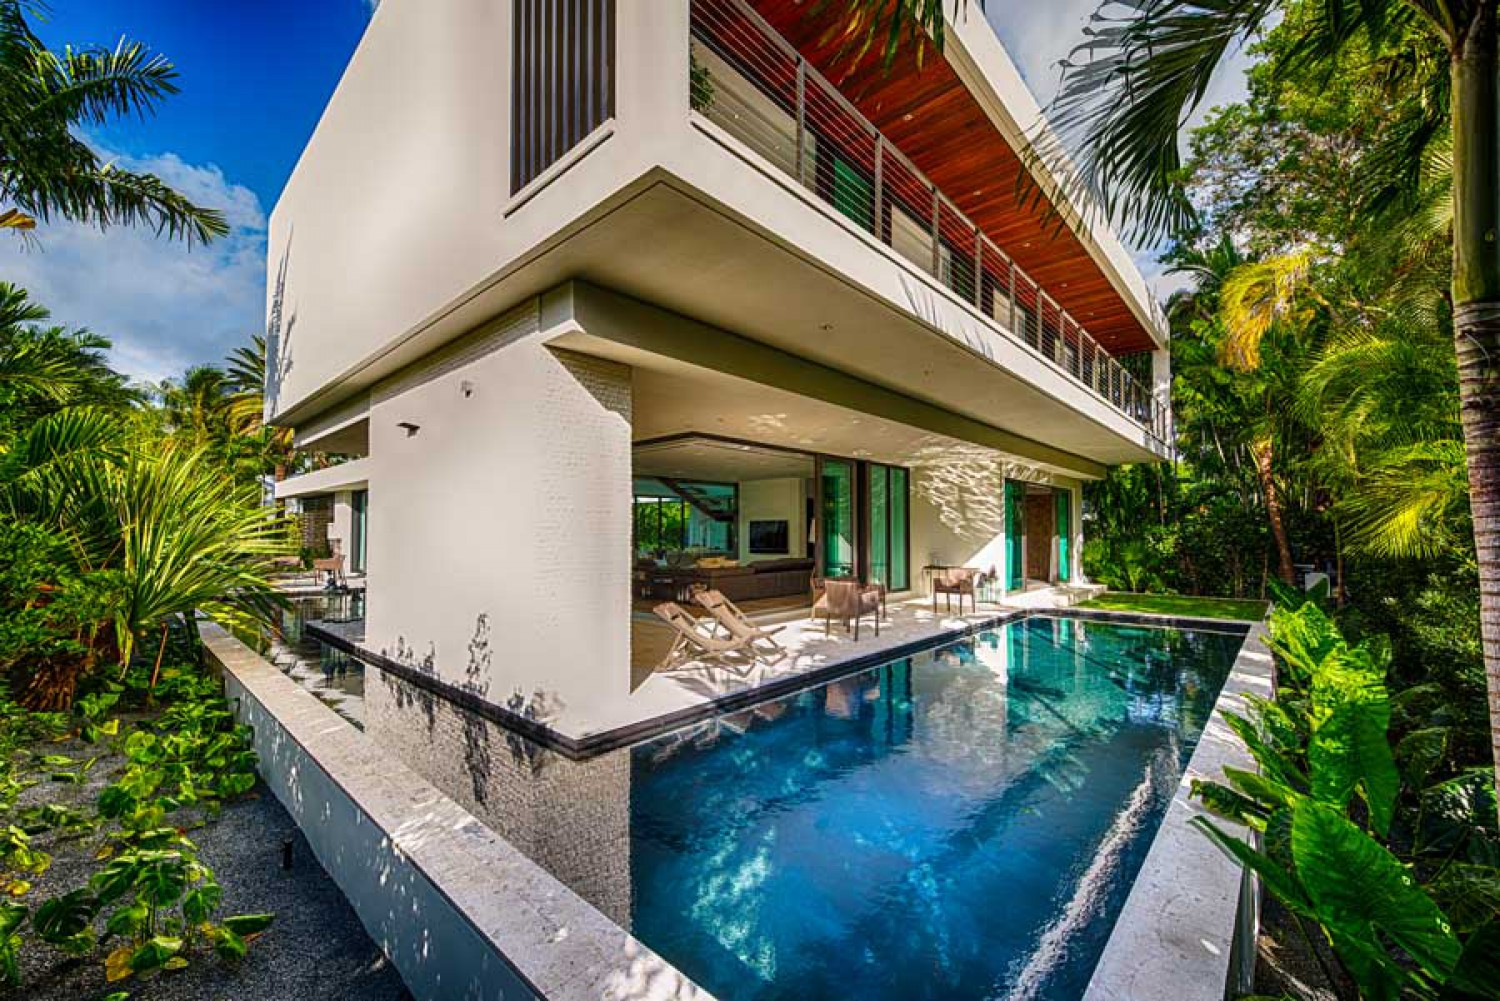 2 south florida homes are finalists in hgtv u0027s ultimate house hunt